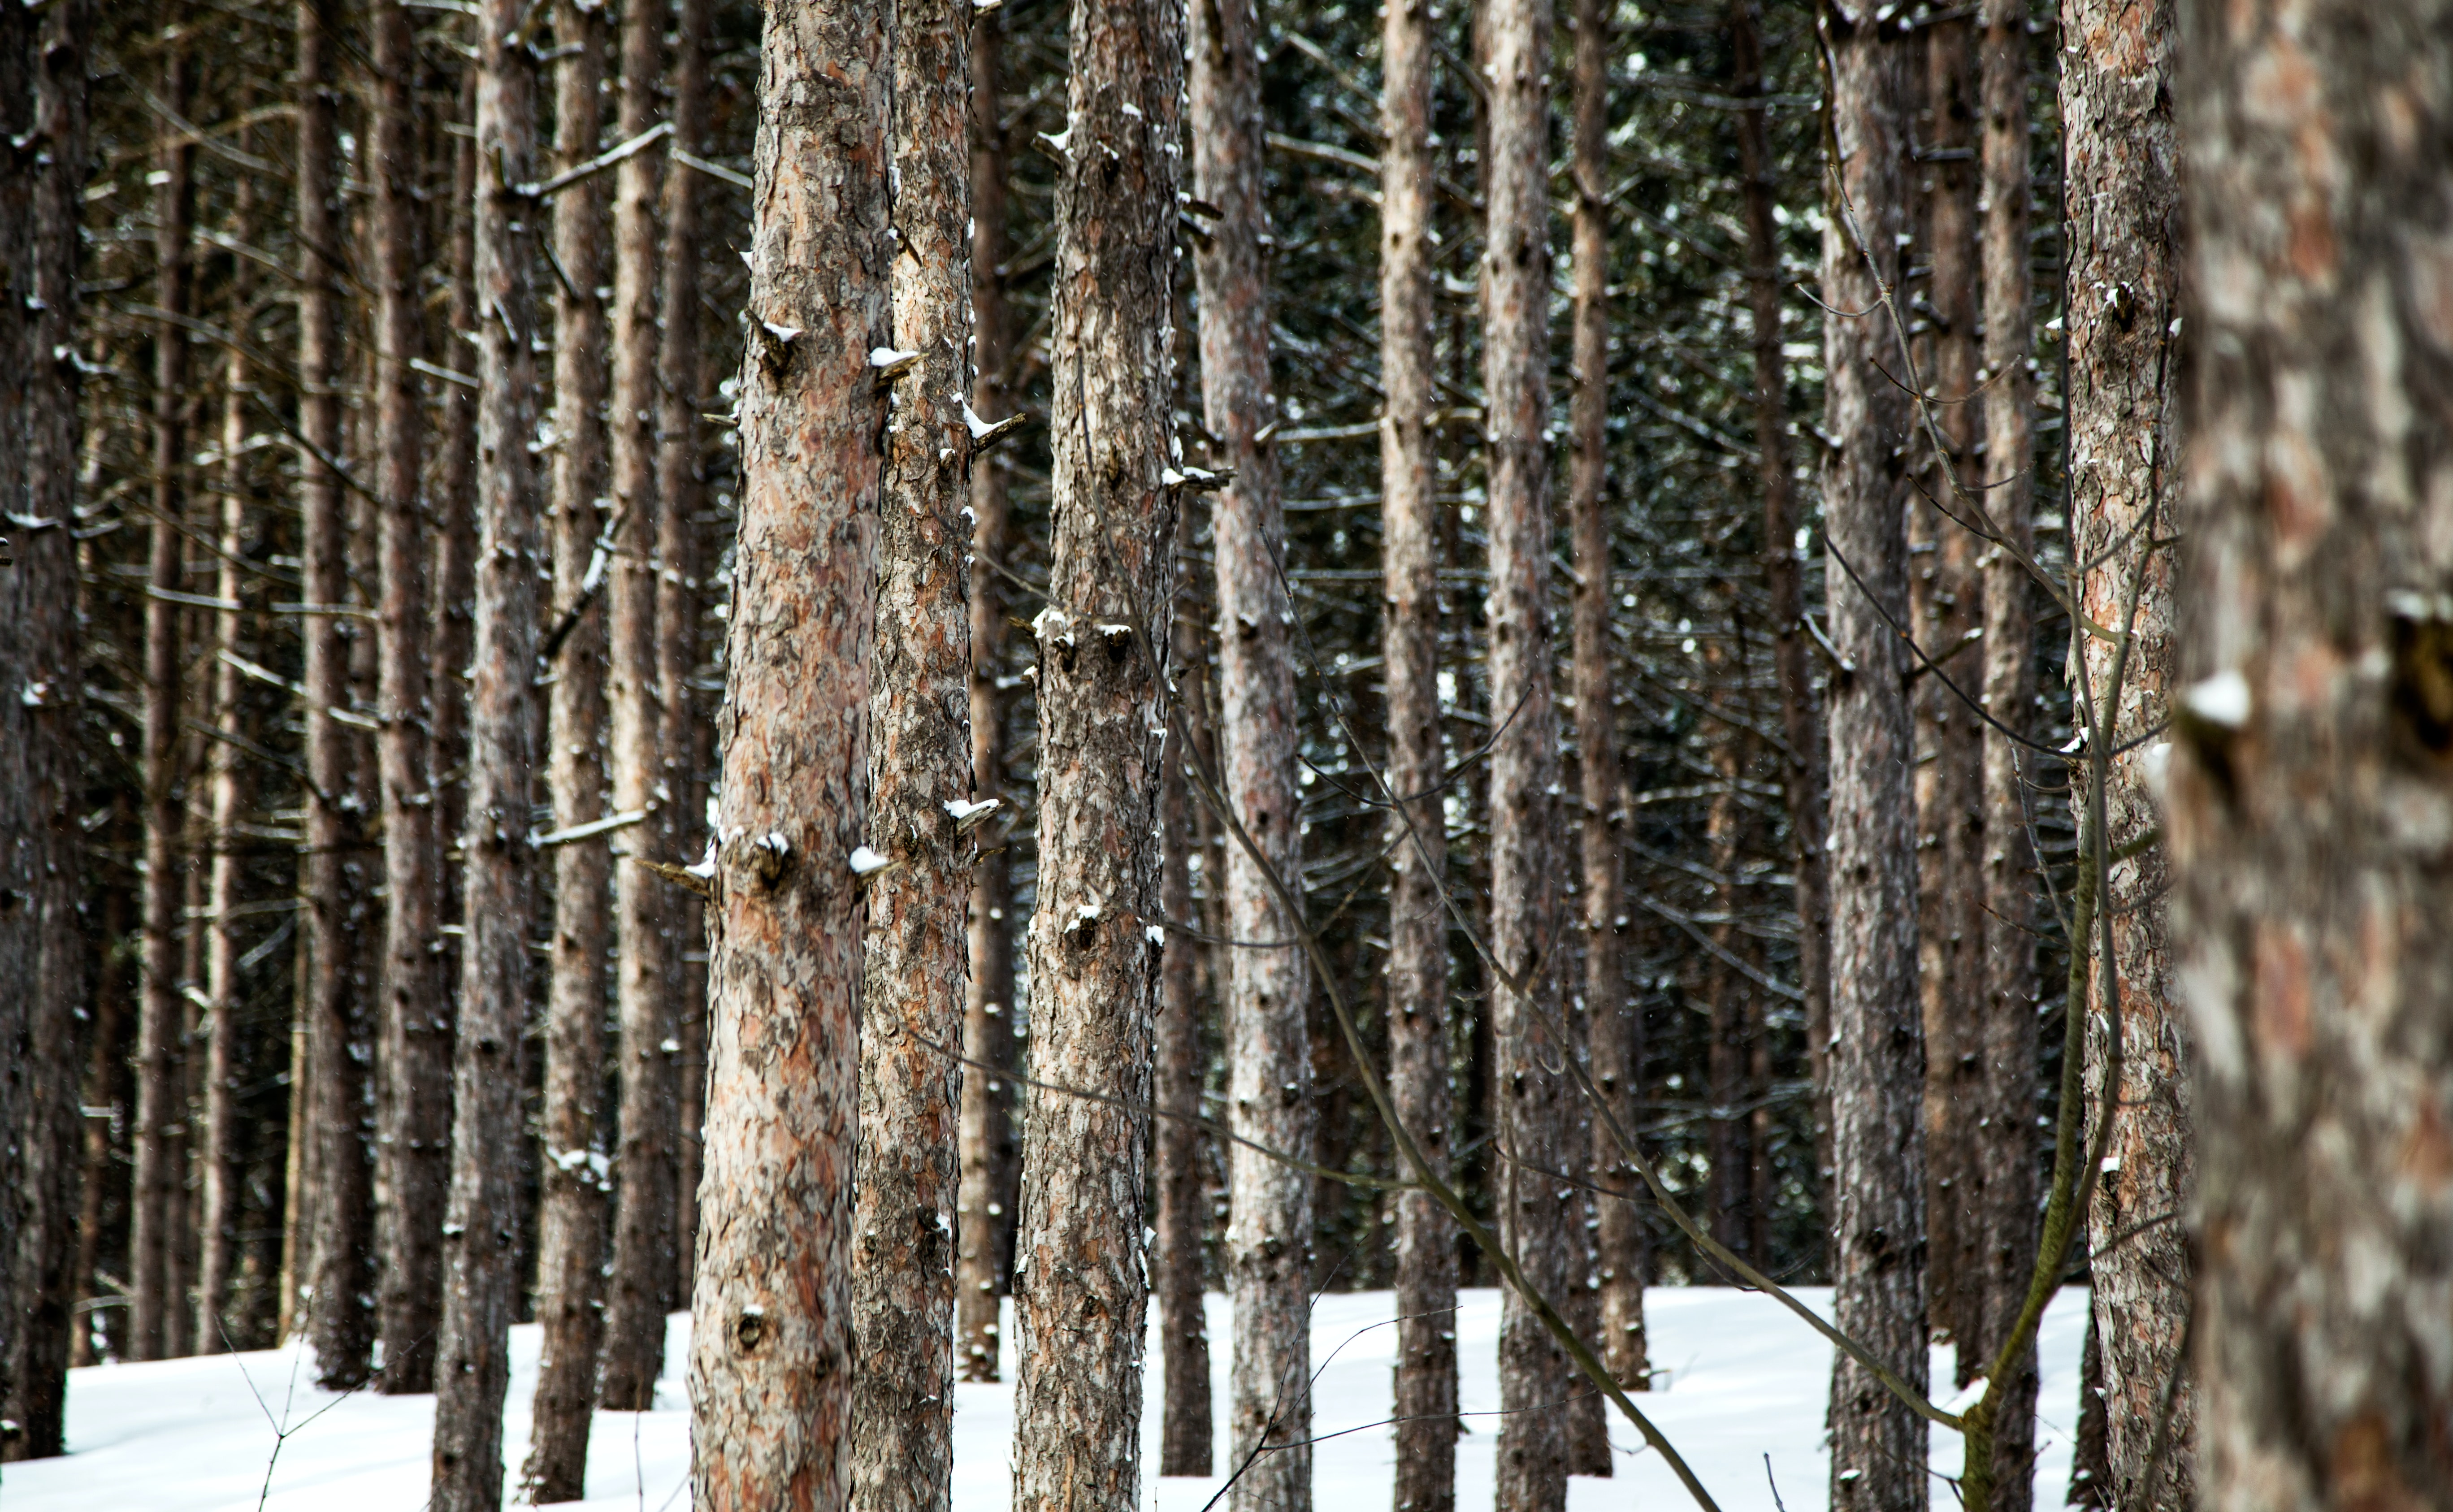 A collection of skinny trees next to each other in the snow covered forest.